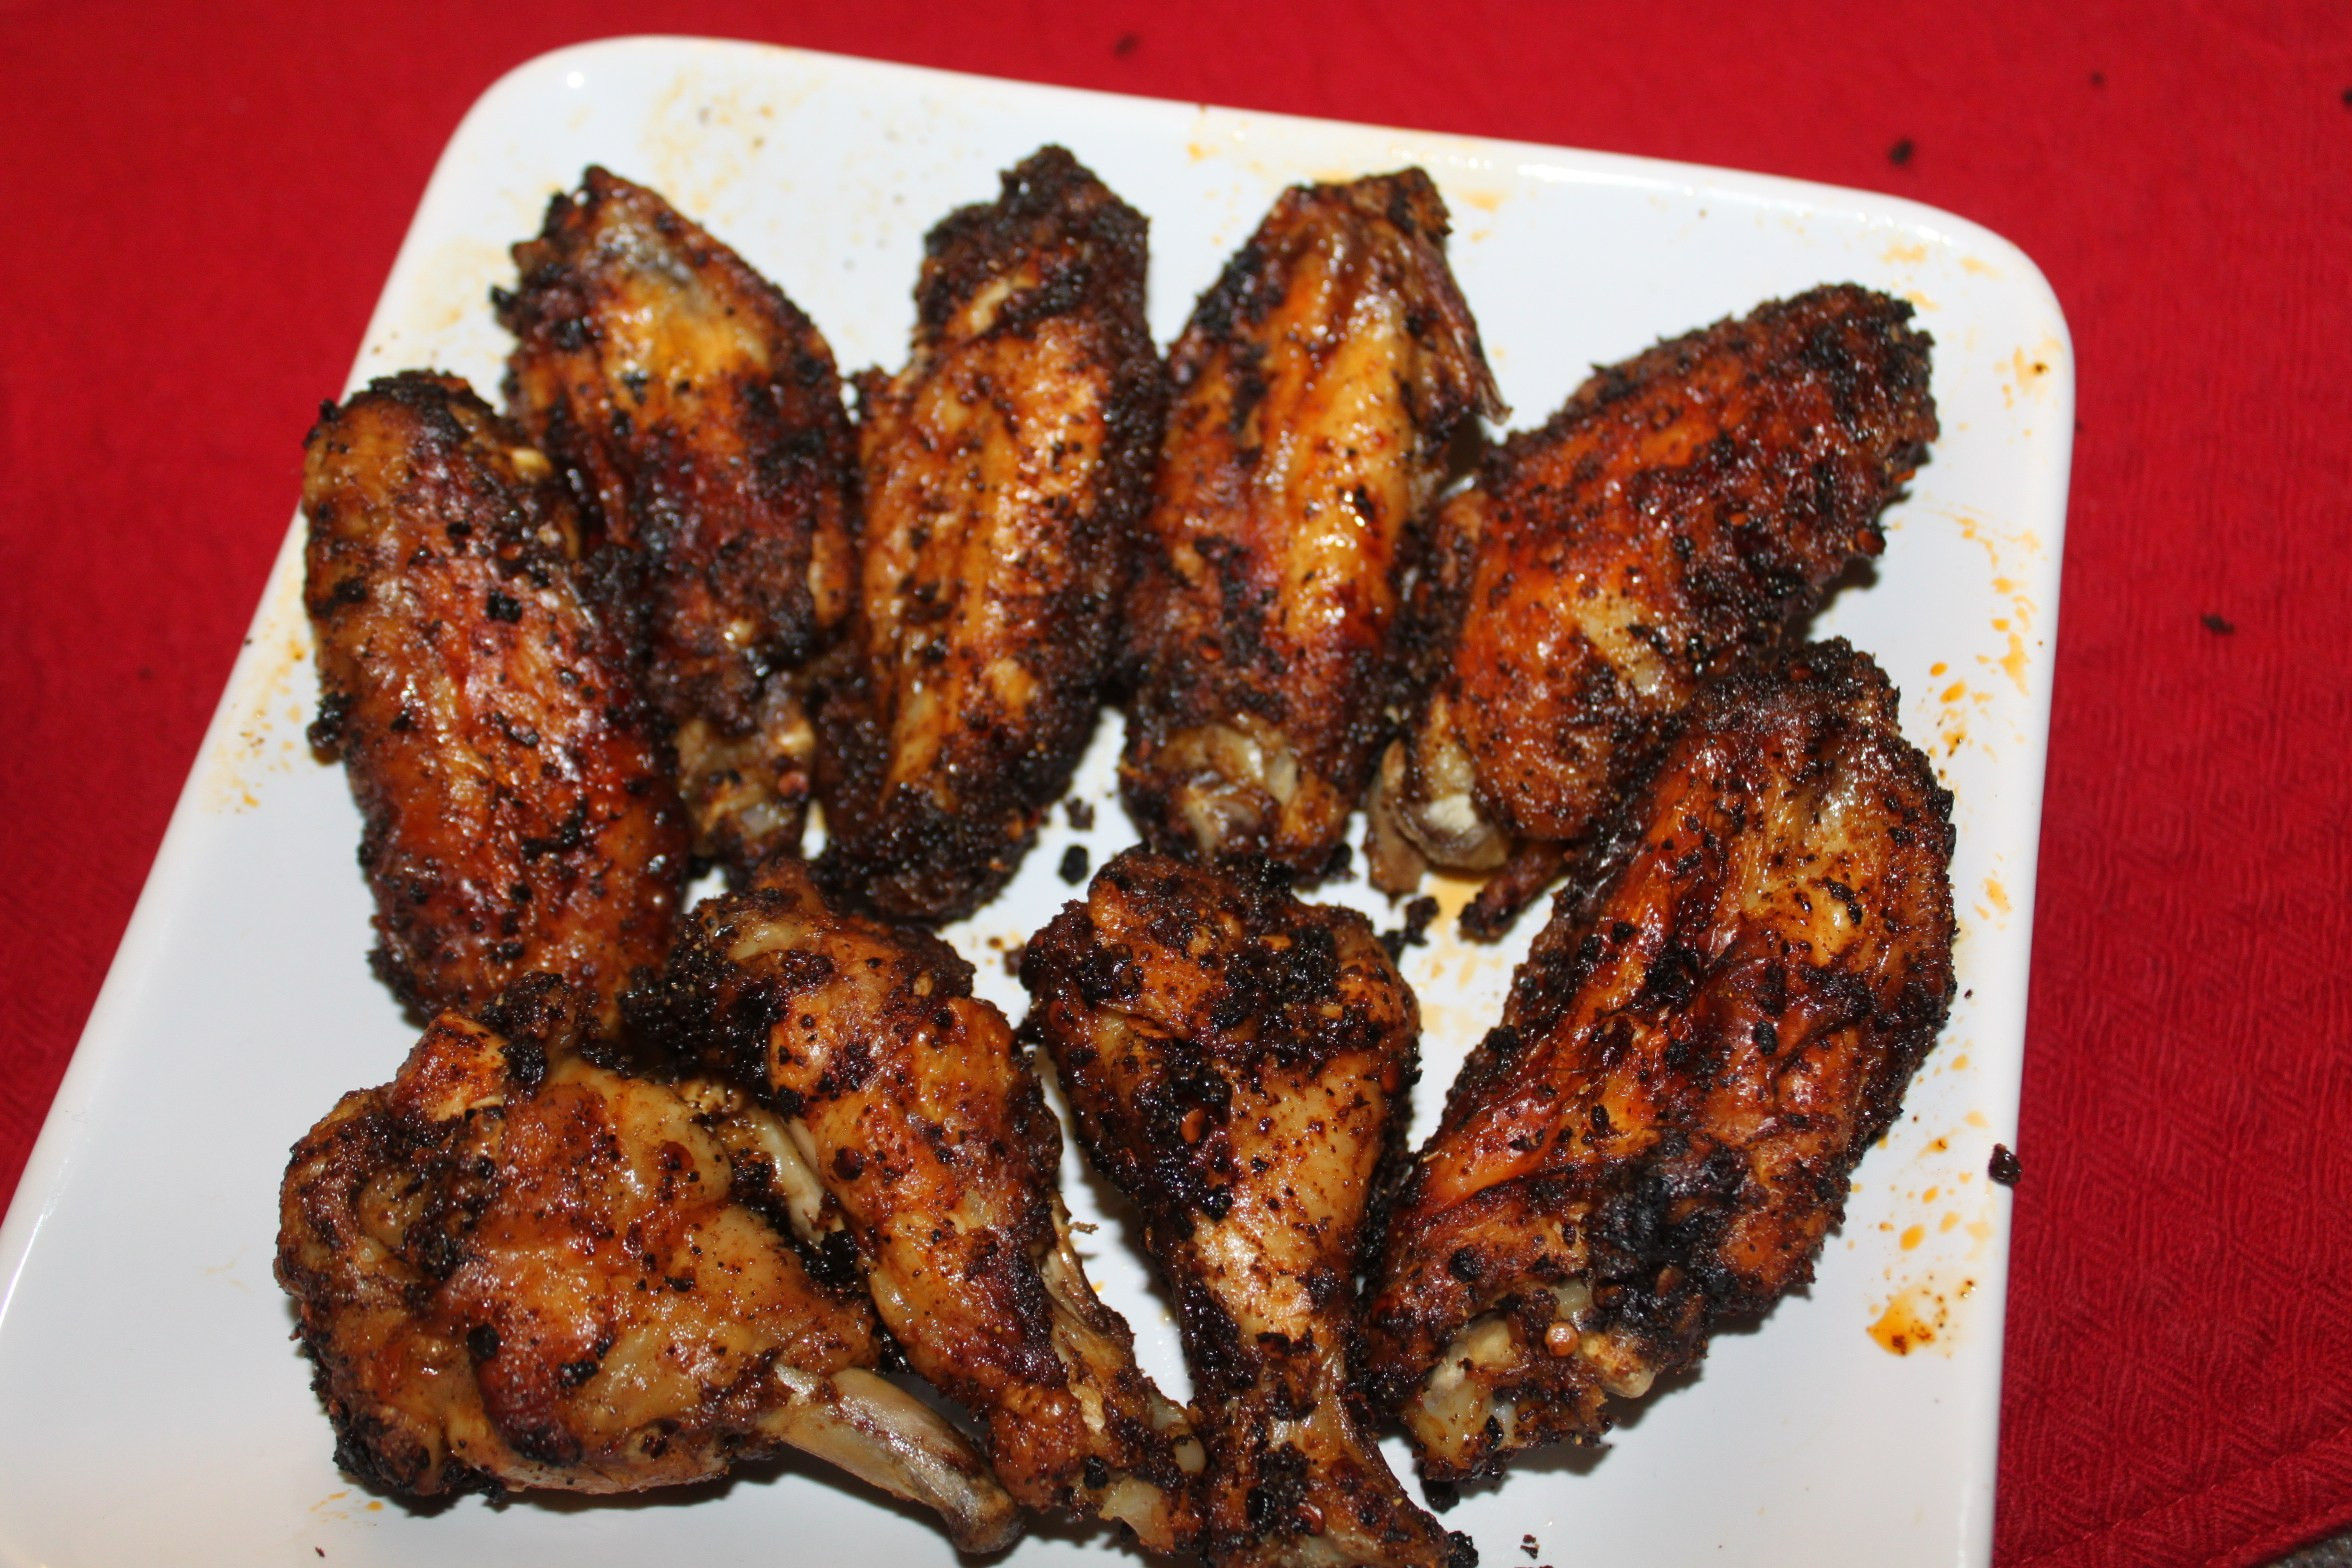 Cook Chicken Wings  BAKED Chicken Wings Recipe With Chipotle Dry Rub